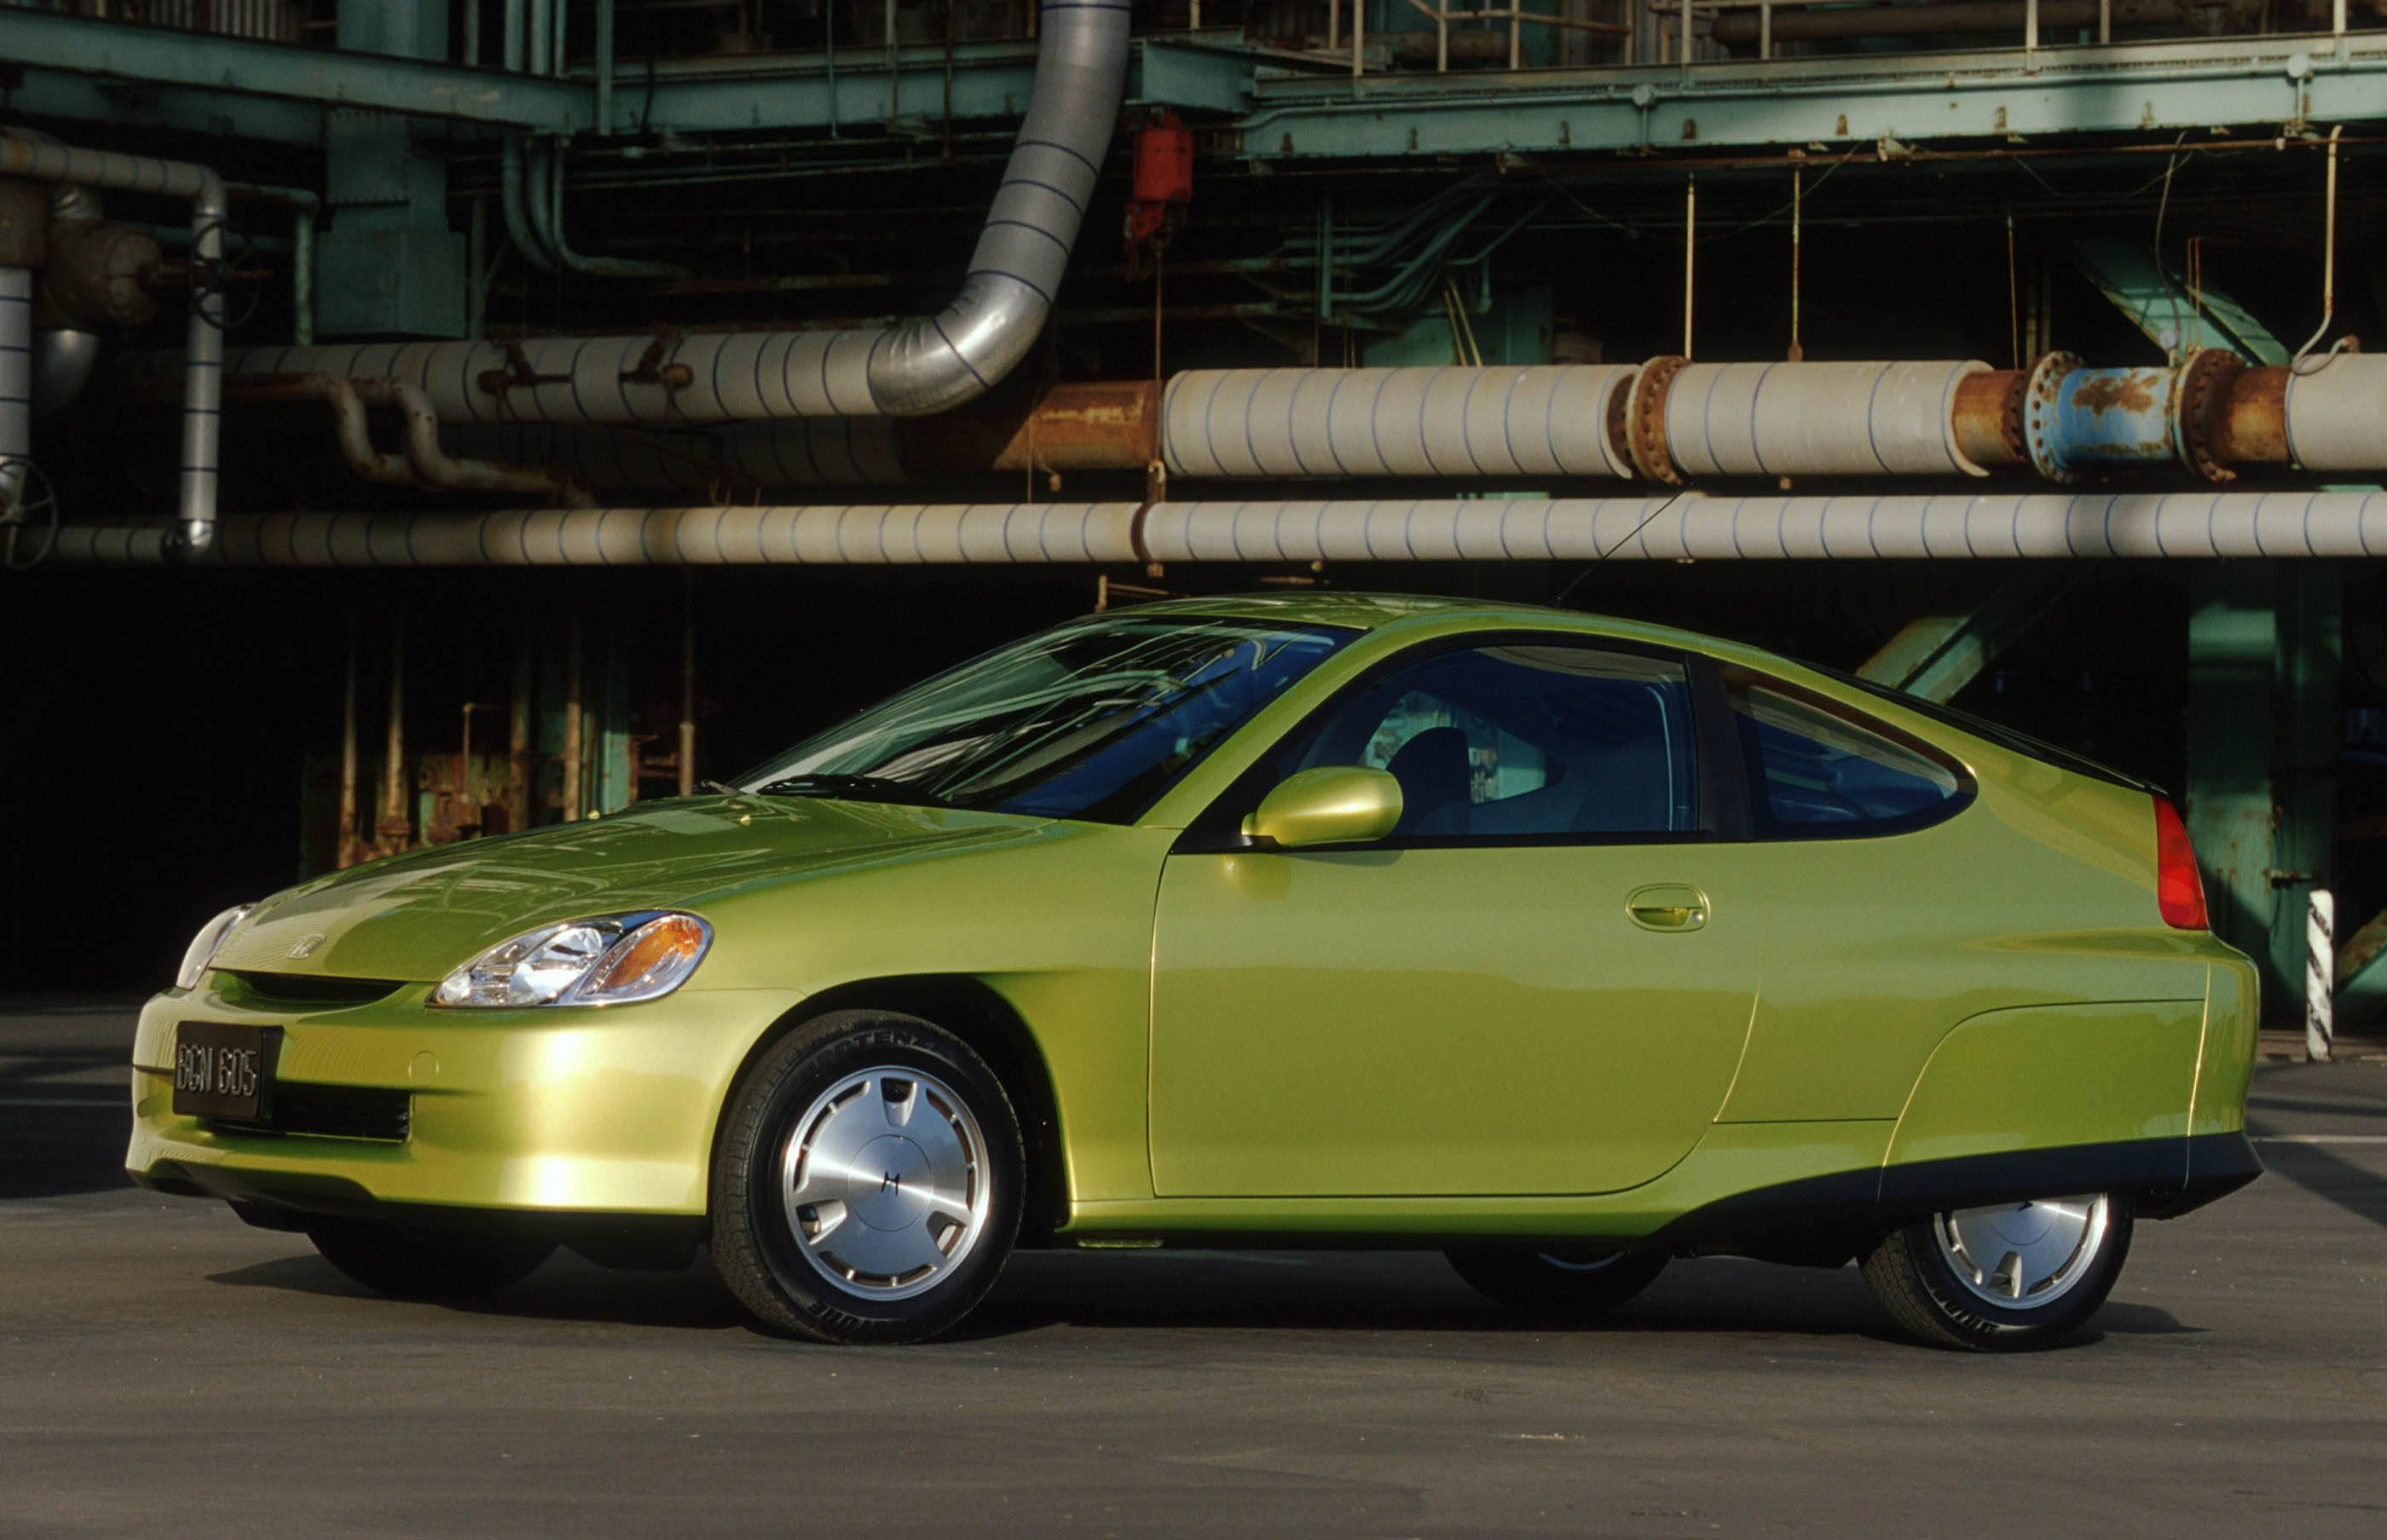 How The Toyota Prius Killed The Honda Insight In The